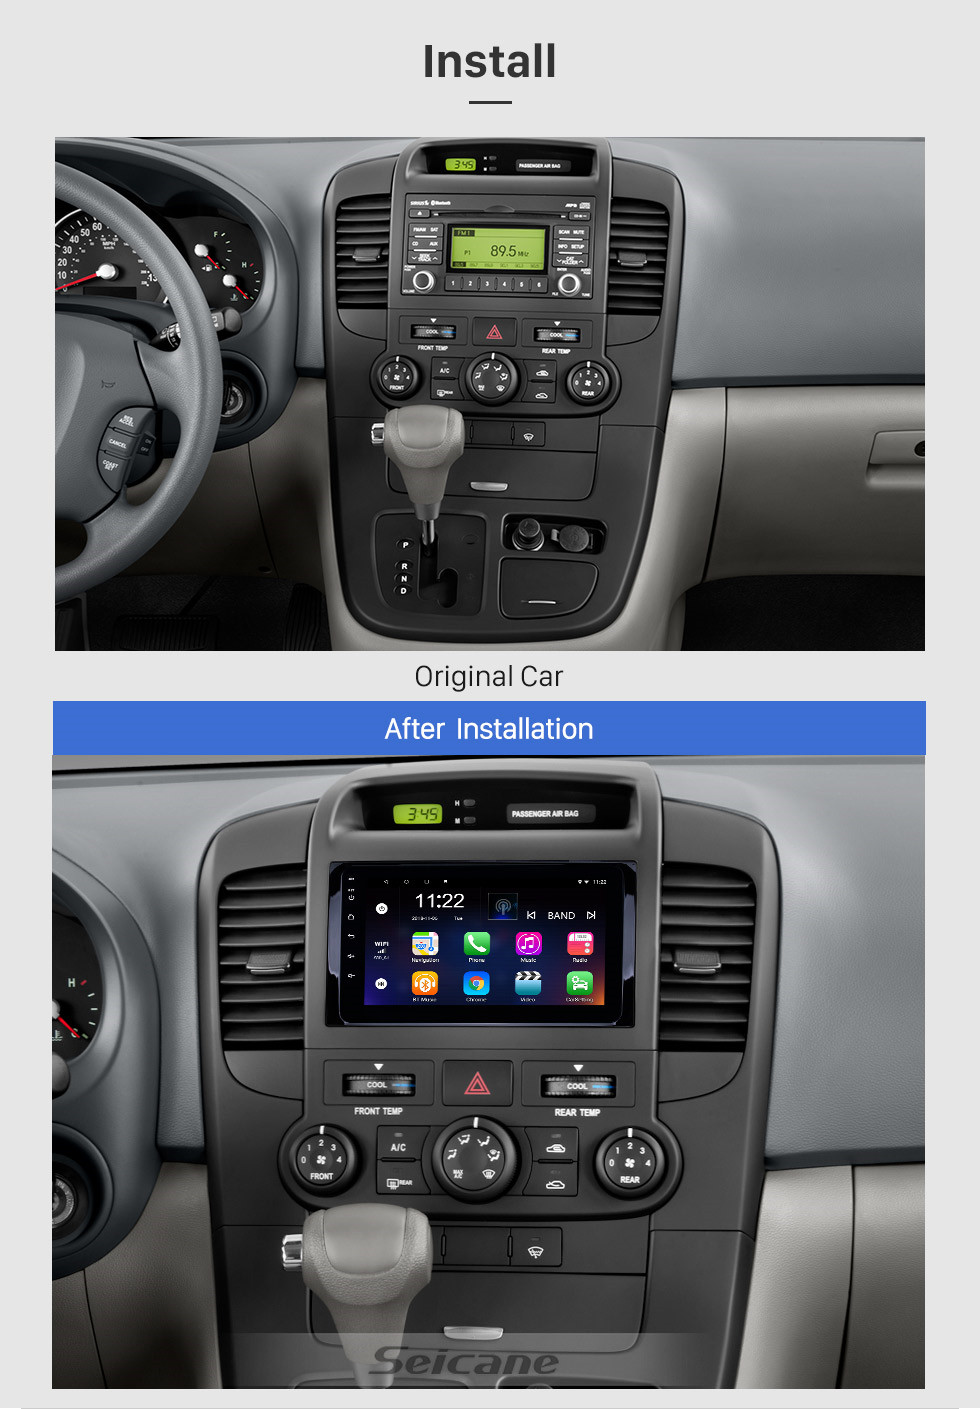 Seicane 8 inch HD Touchscreen Android 10.0 2014-2019 Kia Carnival GPS Navigation Radio with USB WIFI Bluetooth support SWC Carplay Steering Wheel Control